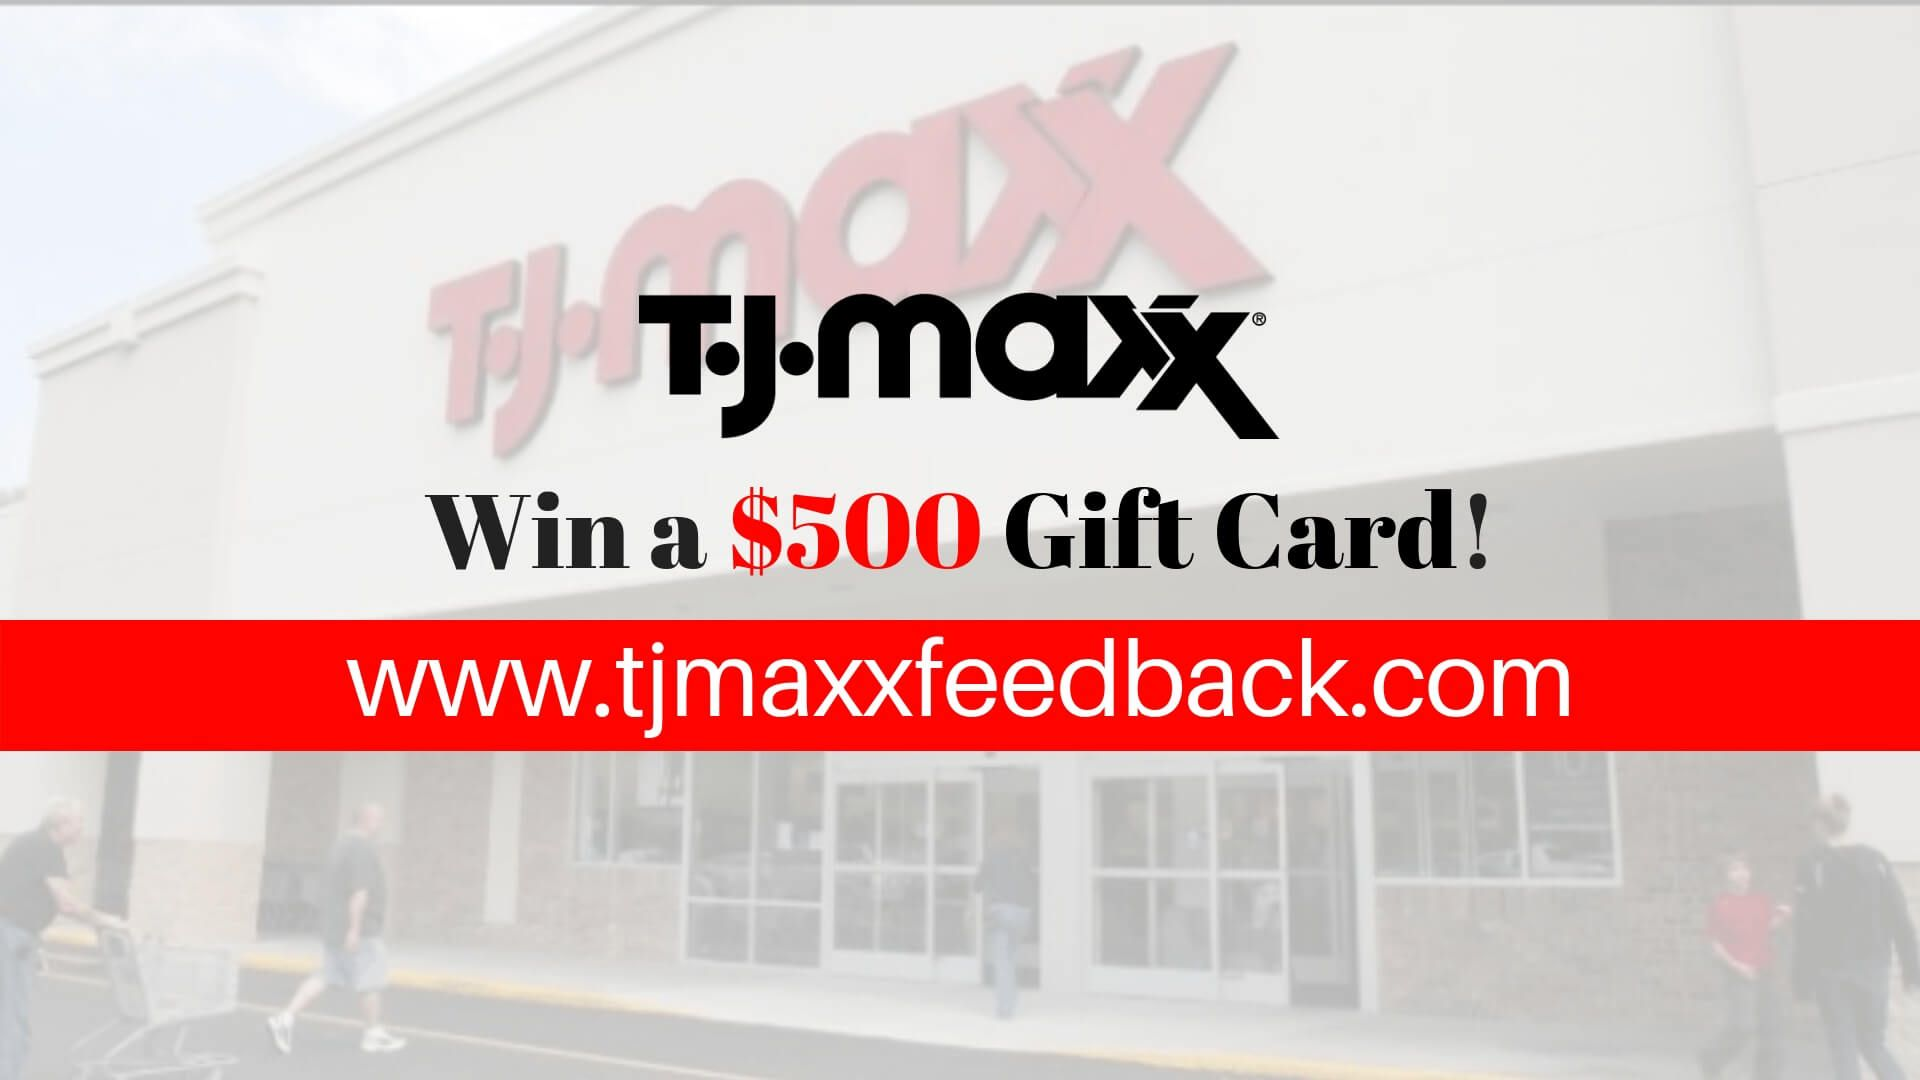 Complete Tjmaxxfeedback survey to Win $500 Gift Card